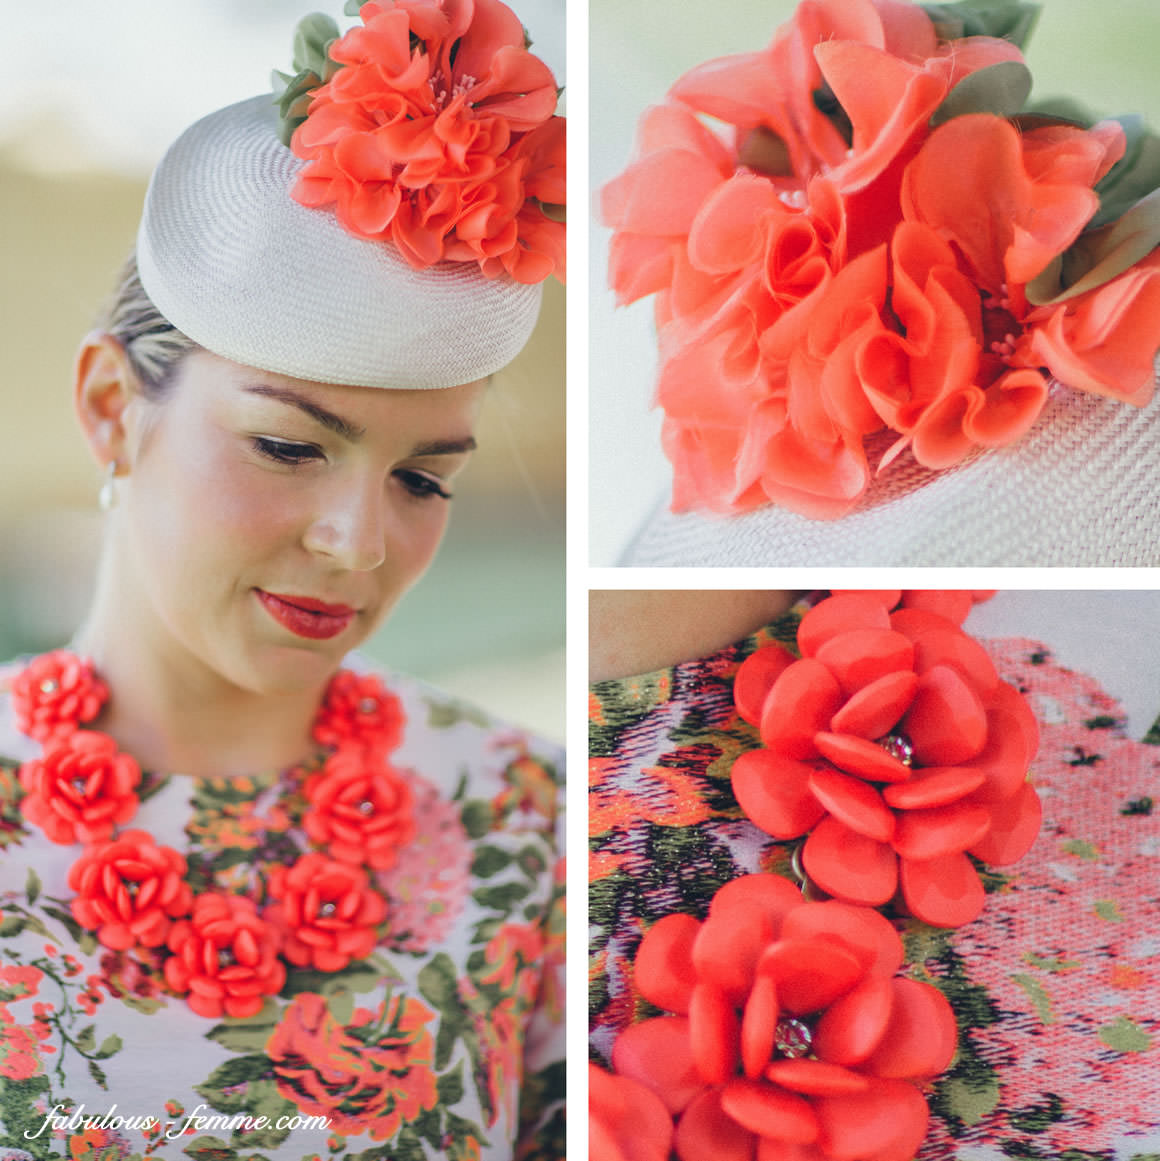 order flowers - fashion and lifestyle